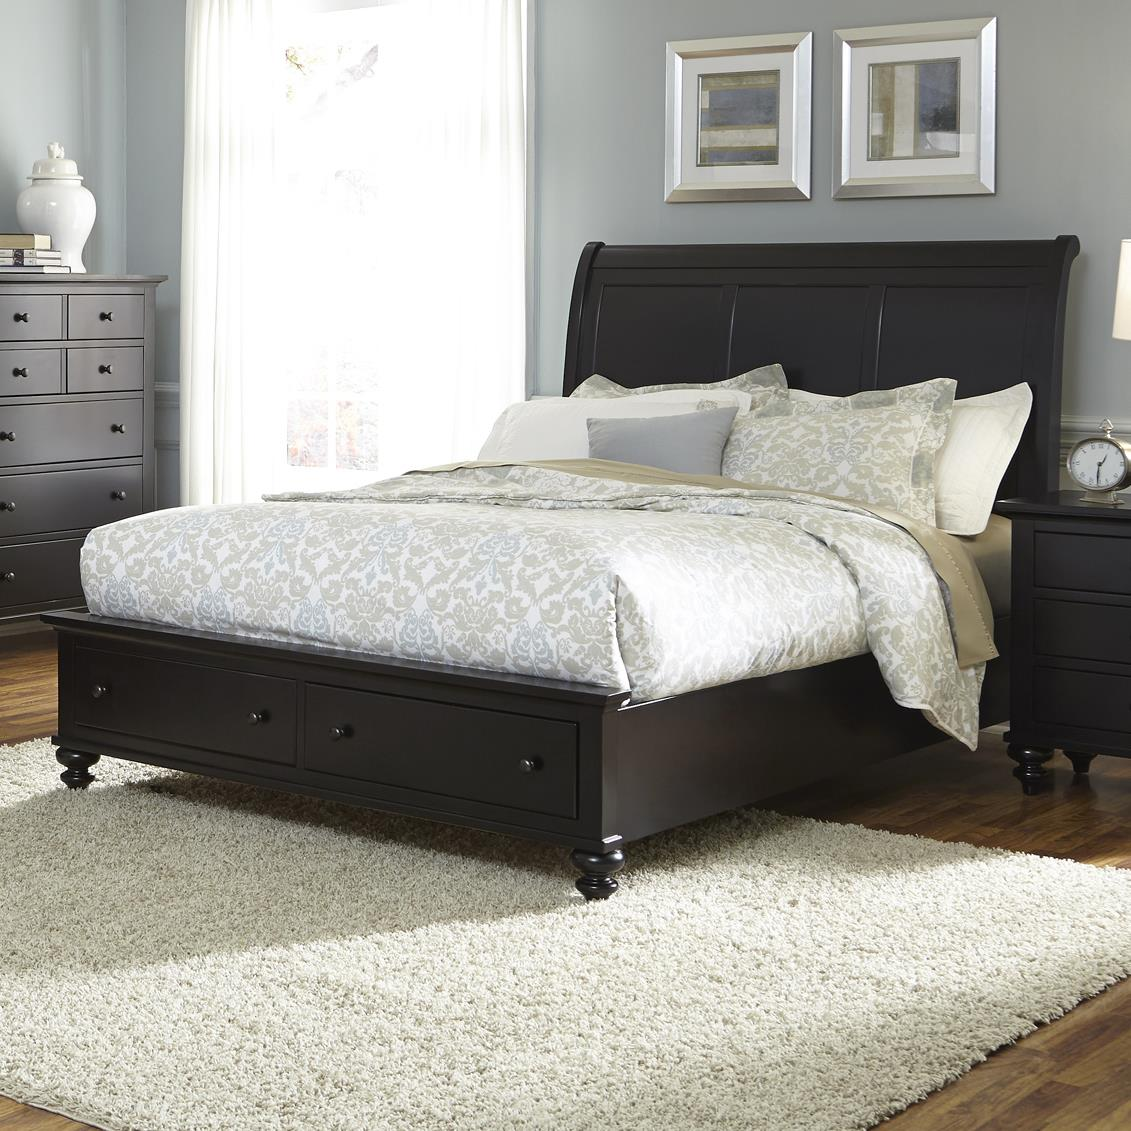 Liberty Furniture Hamilton III Queen Sleigh Bed with Storage Footboard - Item Number: 441-BR-QSB